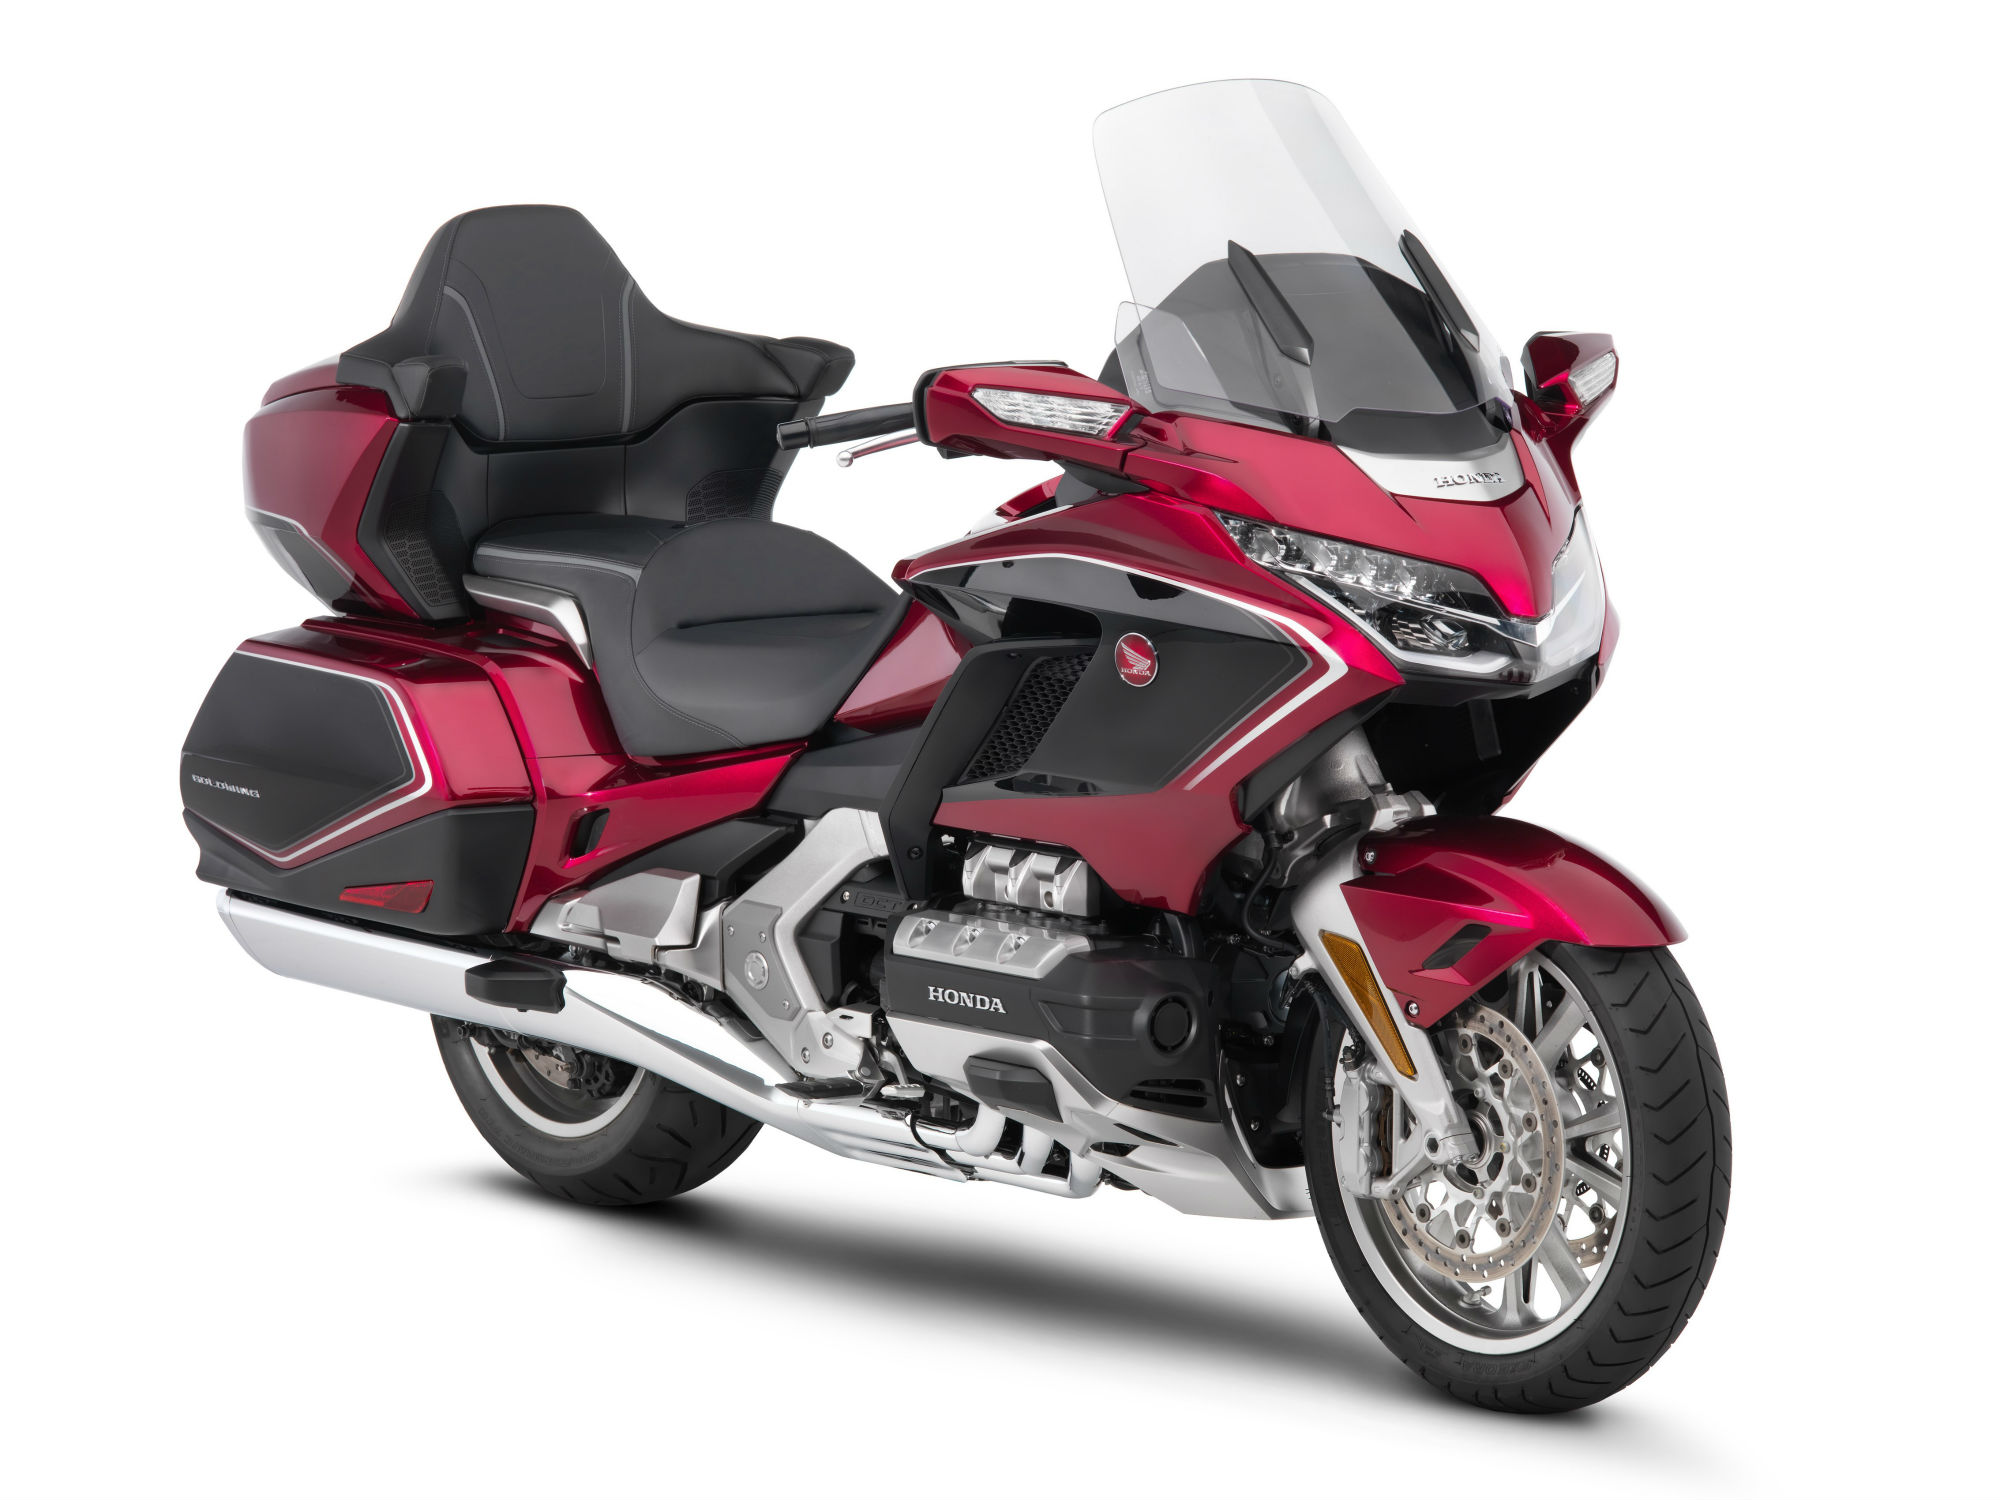 http://www.visordown.com/sites/default/files/field/image/115828_2018_GL1800_Goldwing_Tour.jpg